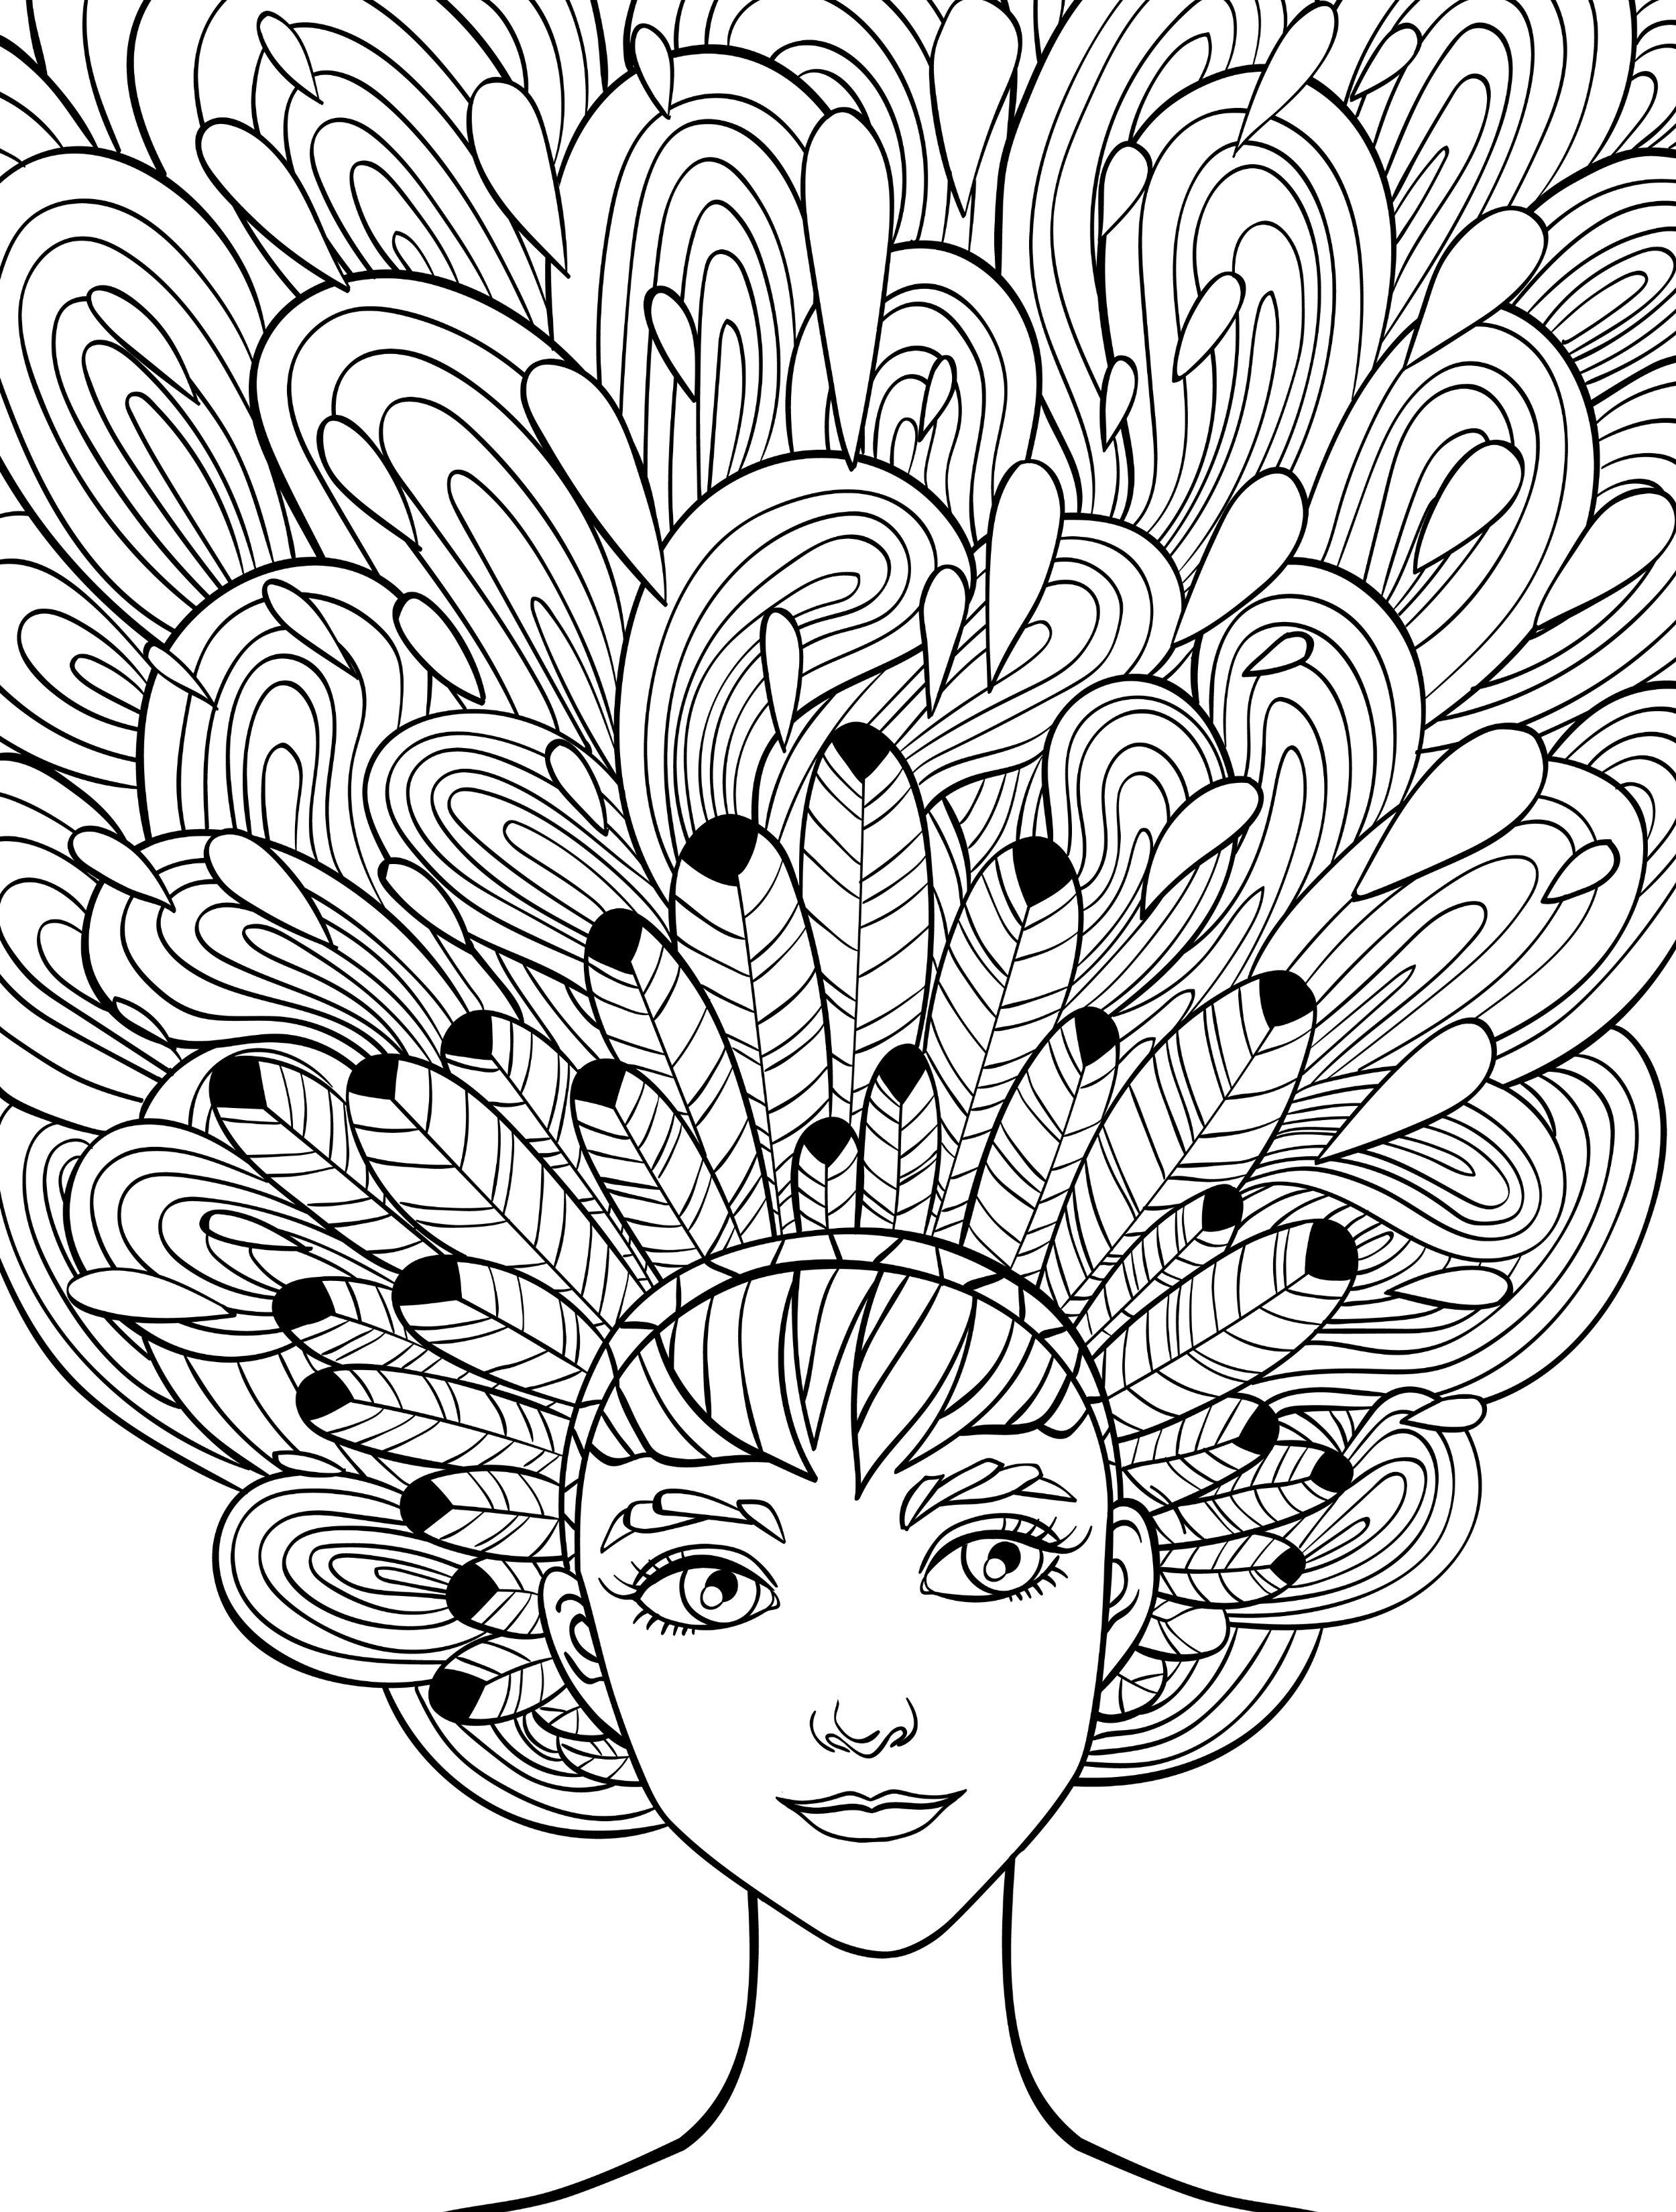 Printable Hair Coloring Pages. 10 Crazy Hair Adult Coloring Pages Davlin Publishing  adultcoloring